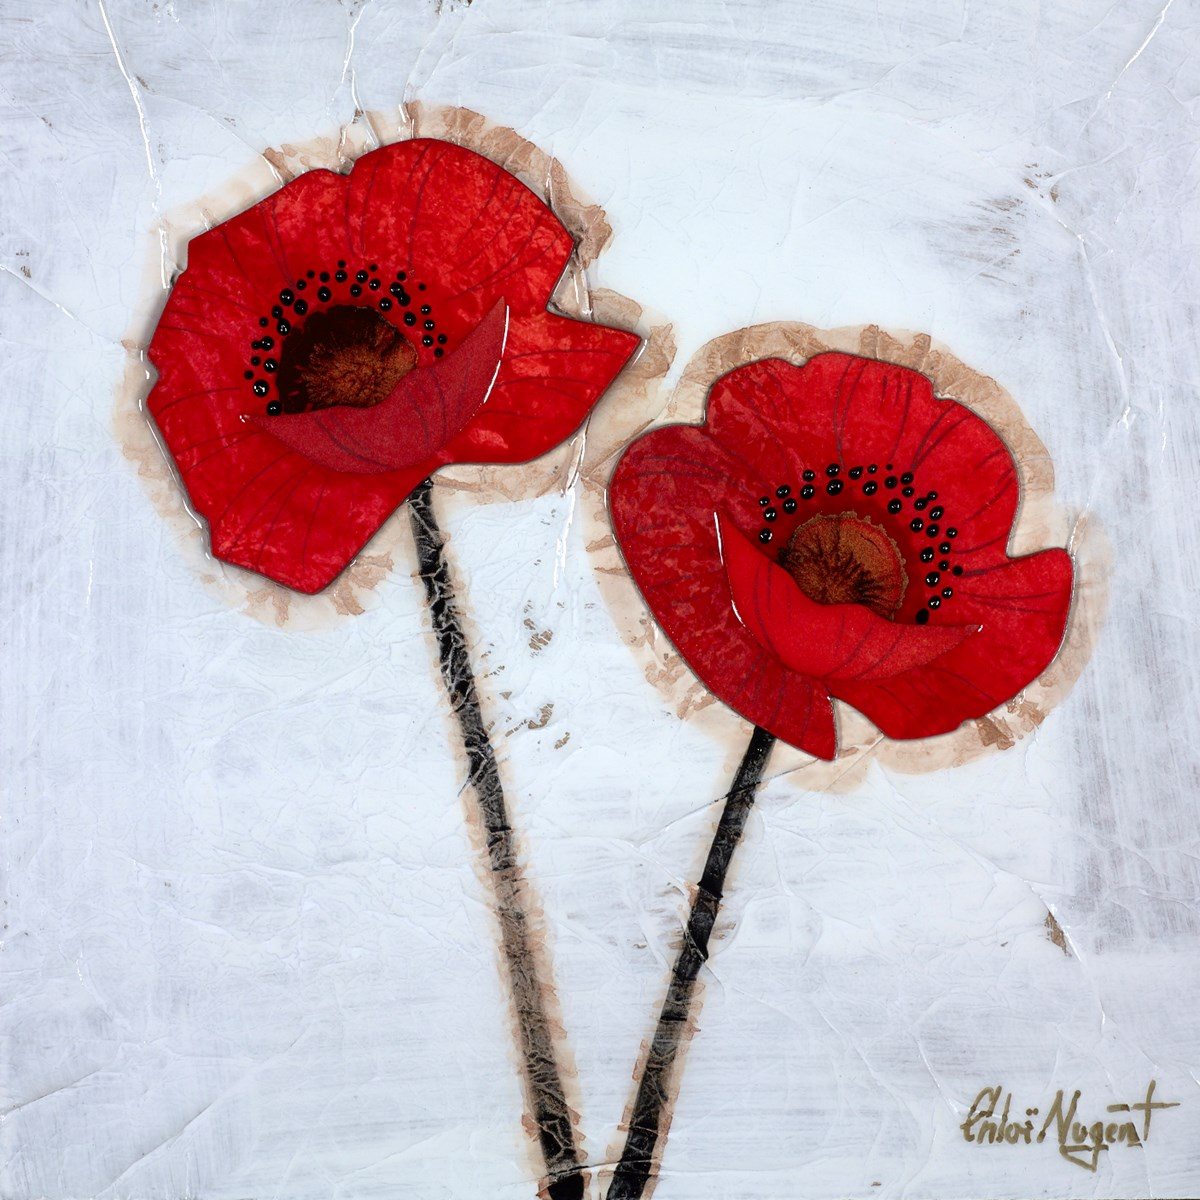 Scarlet Flowers IV by chloe nugent -  sized 10x10 inches. Available from Whitewall Galleries